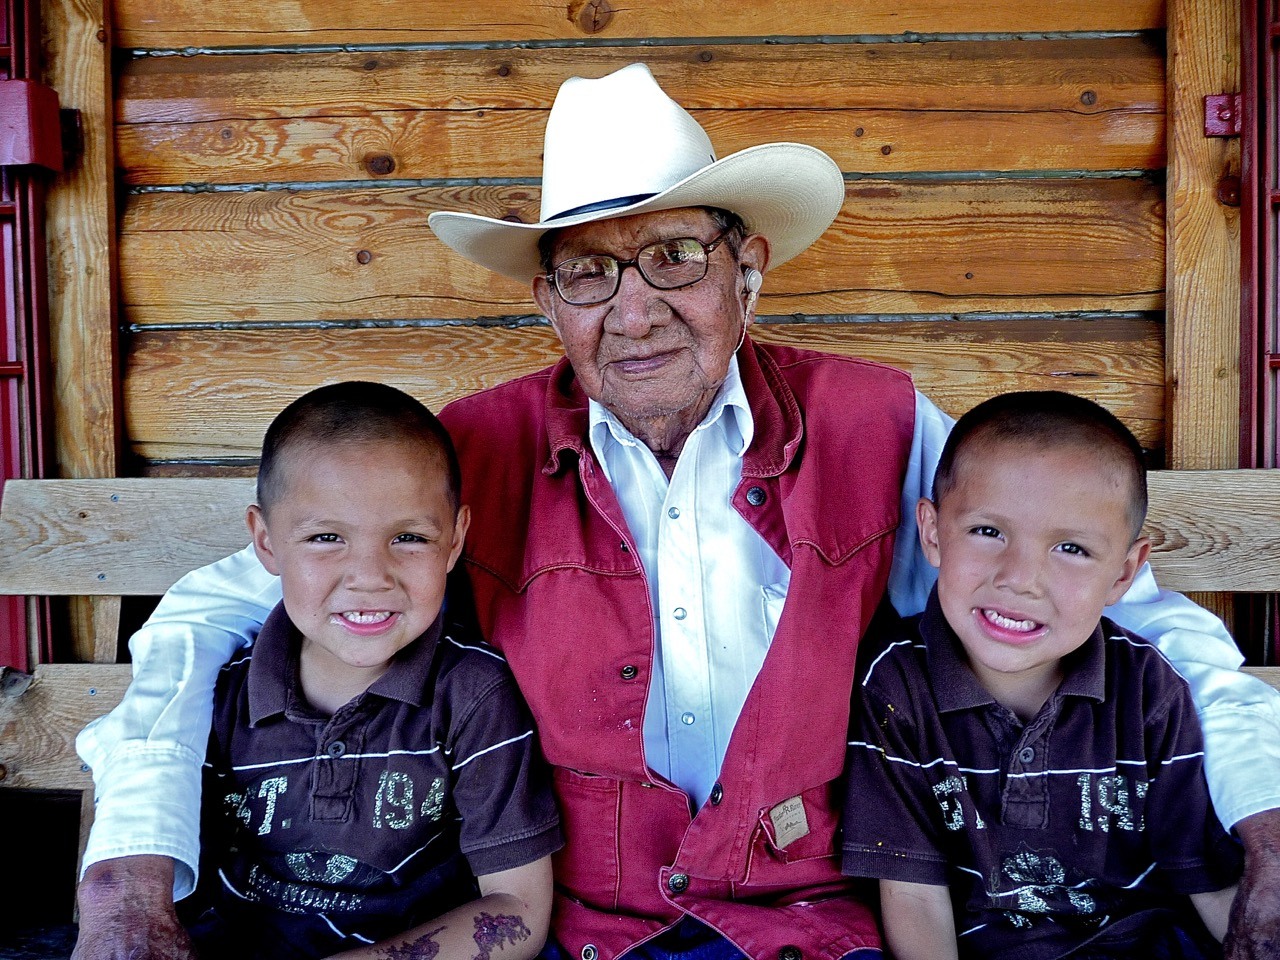 Pius Real Bird and Grandchildren, Crow, Custer Battlefield Trading Post, Crow Agency, Montana, USA, 2011.